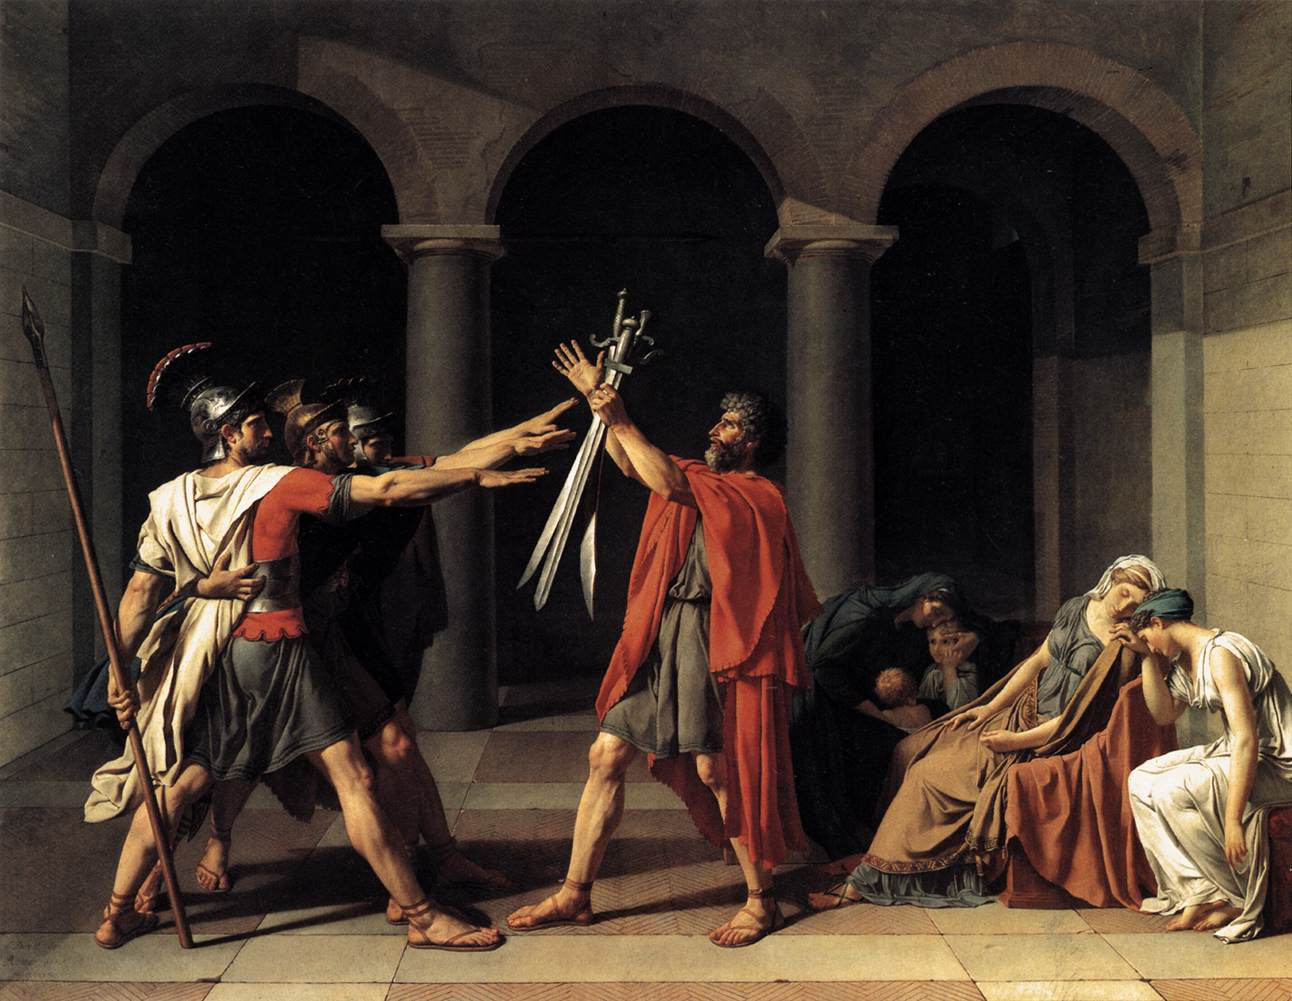 """""""The Oath of the Horatii""""Jacques-Louis David's 1784  The painting was an 18th century touchstone on the ideals of """"civic virtue"""" which became foundational political theory. Source: Wikimedia"""